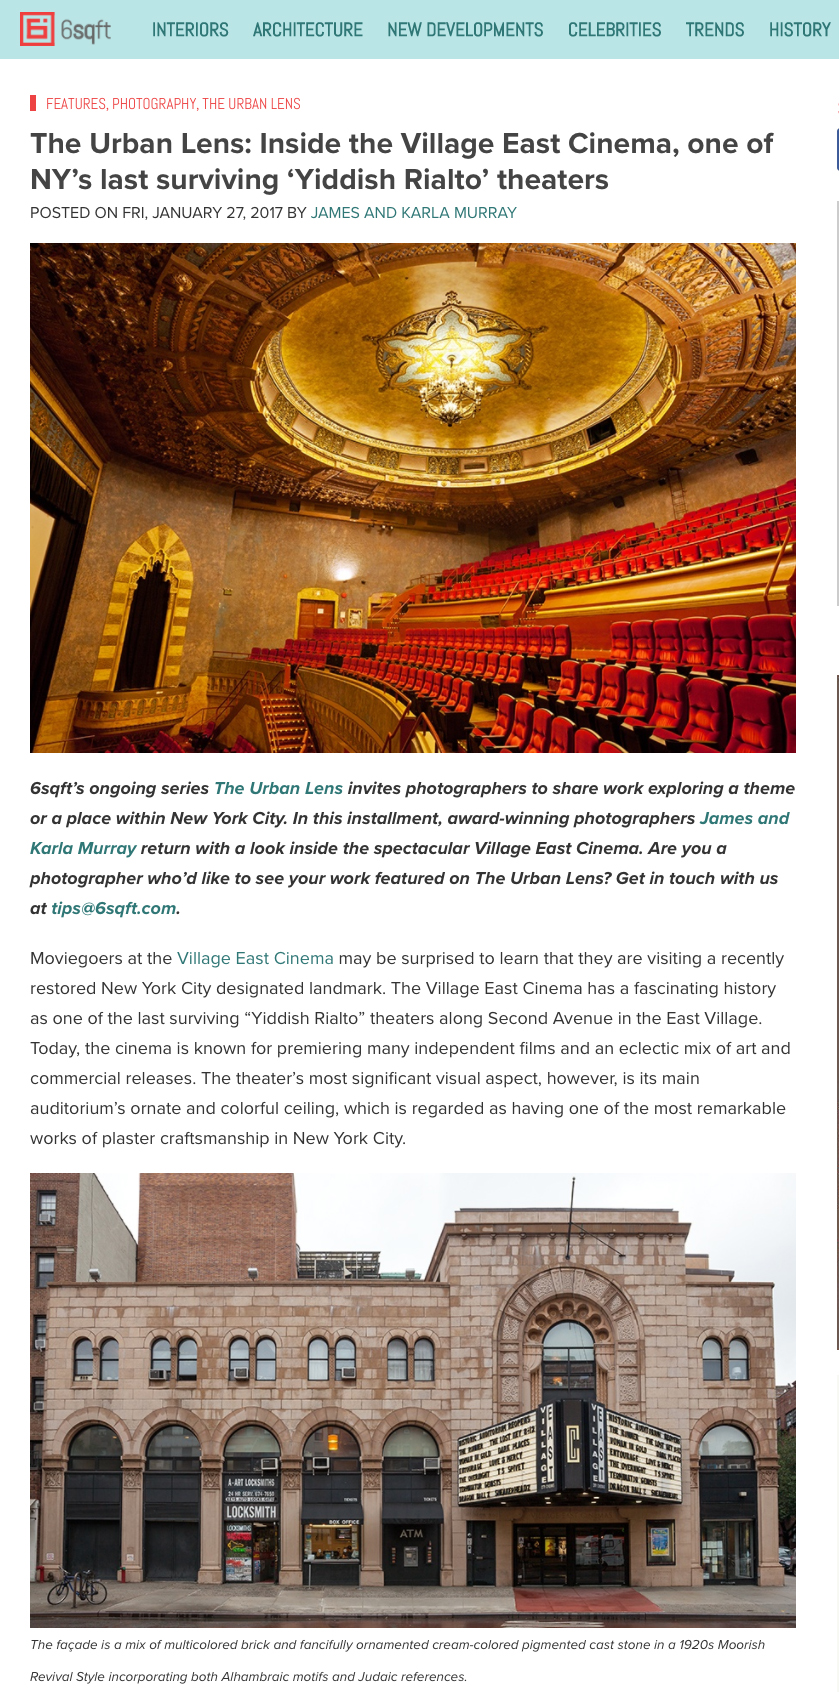 The Urban Lens  Inside the Village East Cinema  one of NY s last surviving  Yiddish Rialto  theaters   6sqft.jpg